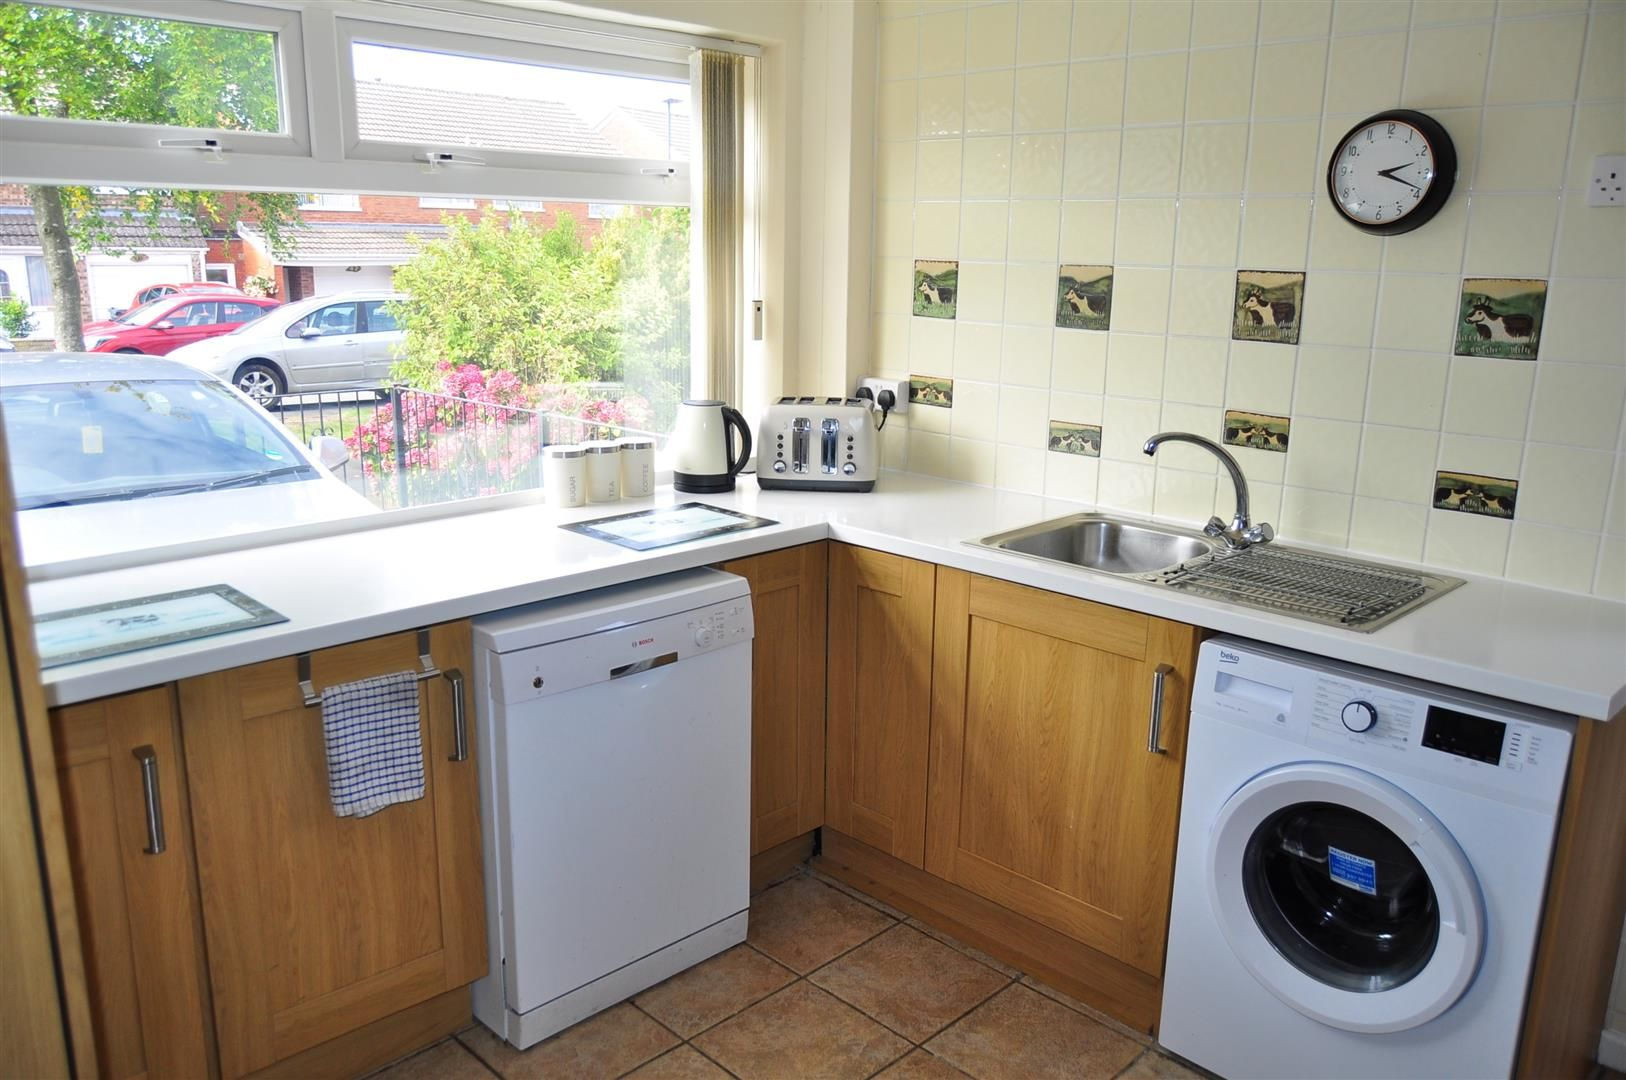 3 bed end-of-terrace for sale in Quinton 4